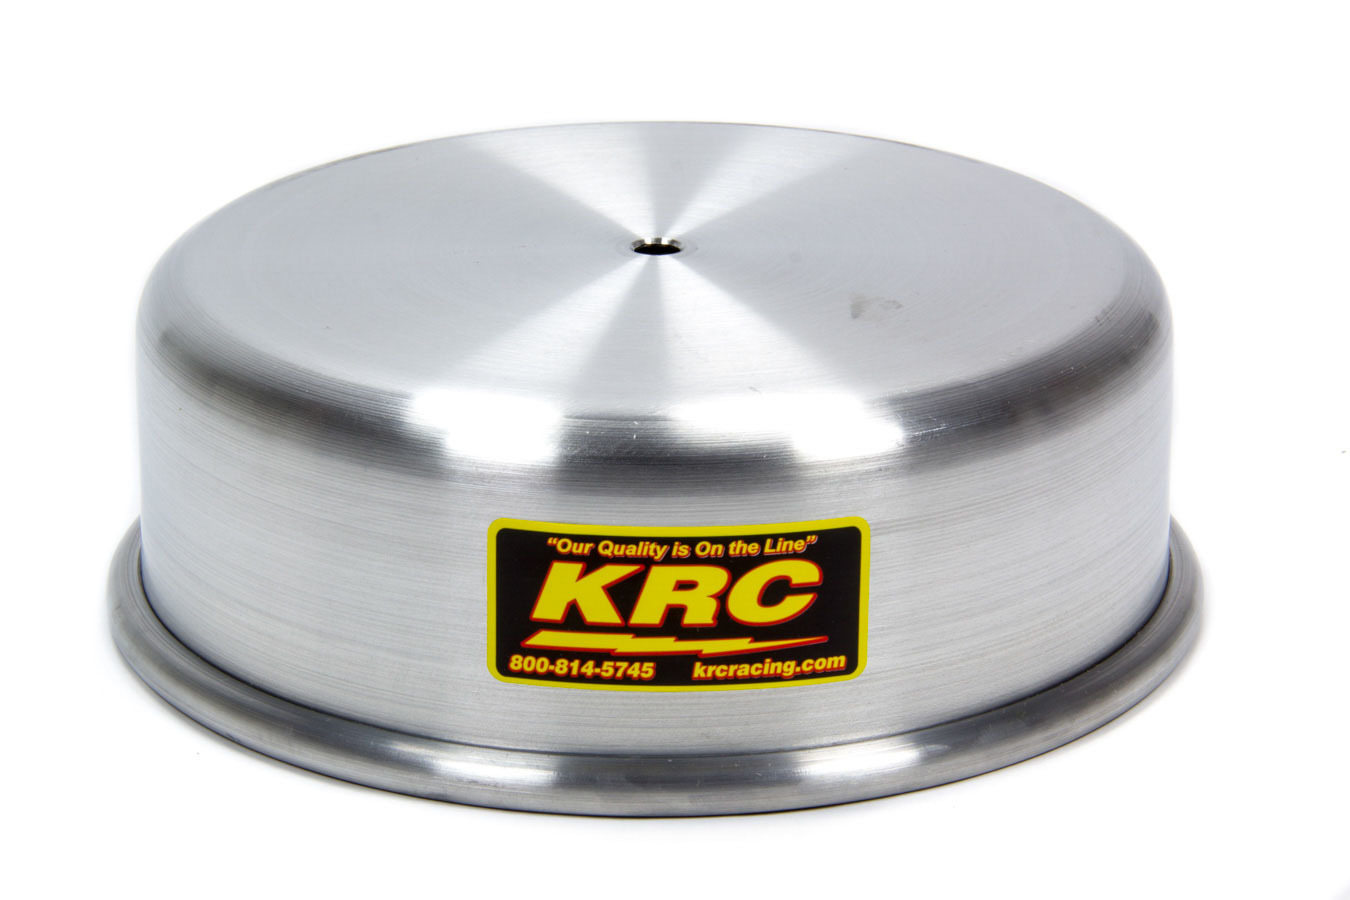 Kluhsman Racing Products 1032 Carburetor Cover, O-Ring Seal, Aluminum, Natural, 7-5/16 in Flange, Each